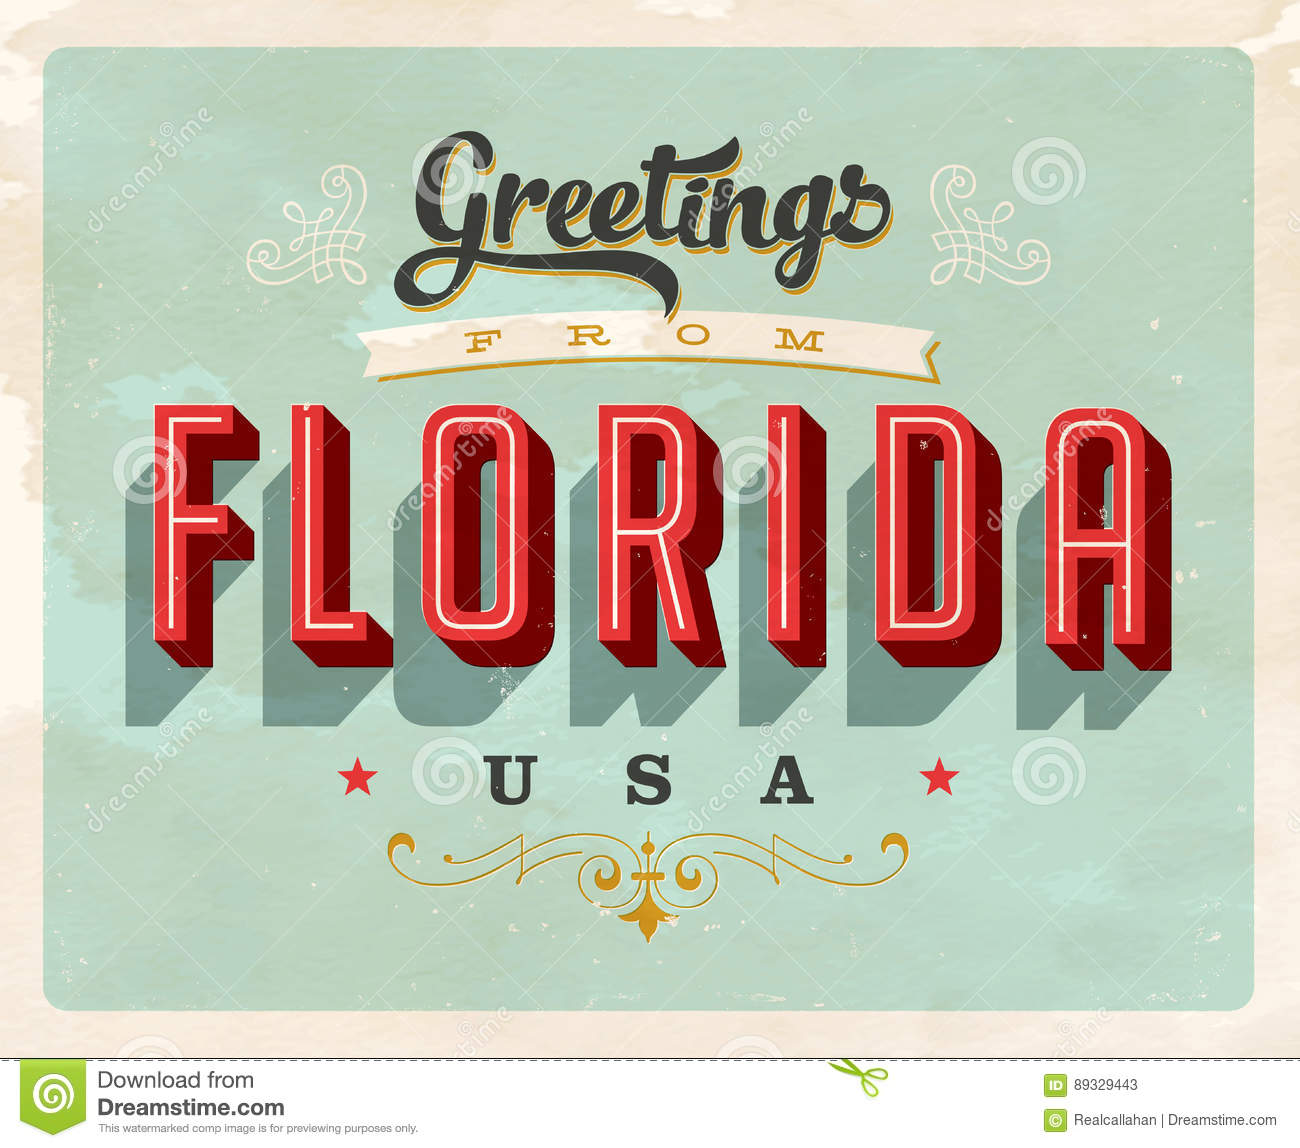 Vintage greetings from florida vacation card stock vector vintage greetings from florida vacation card kristyandbryce Image collections